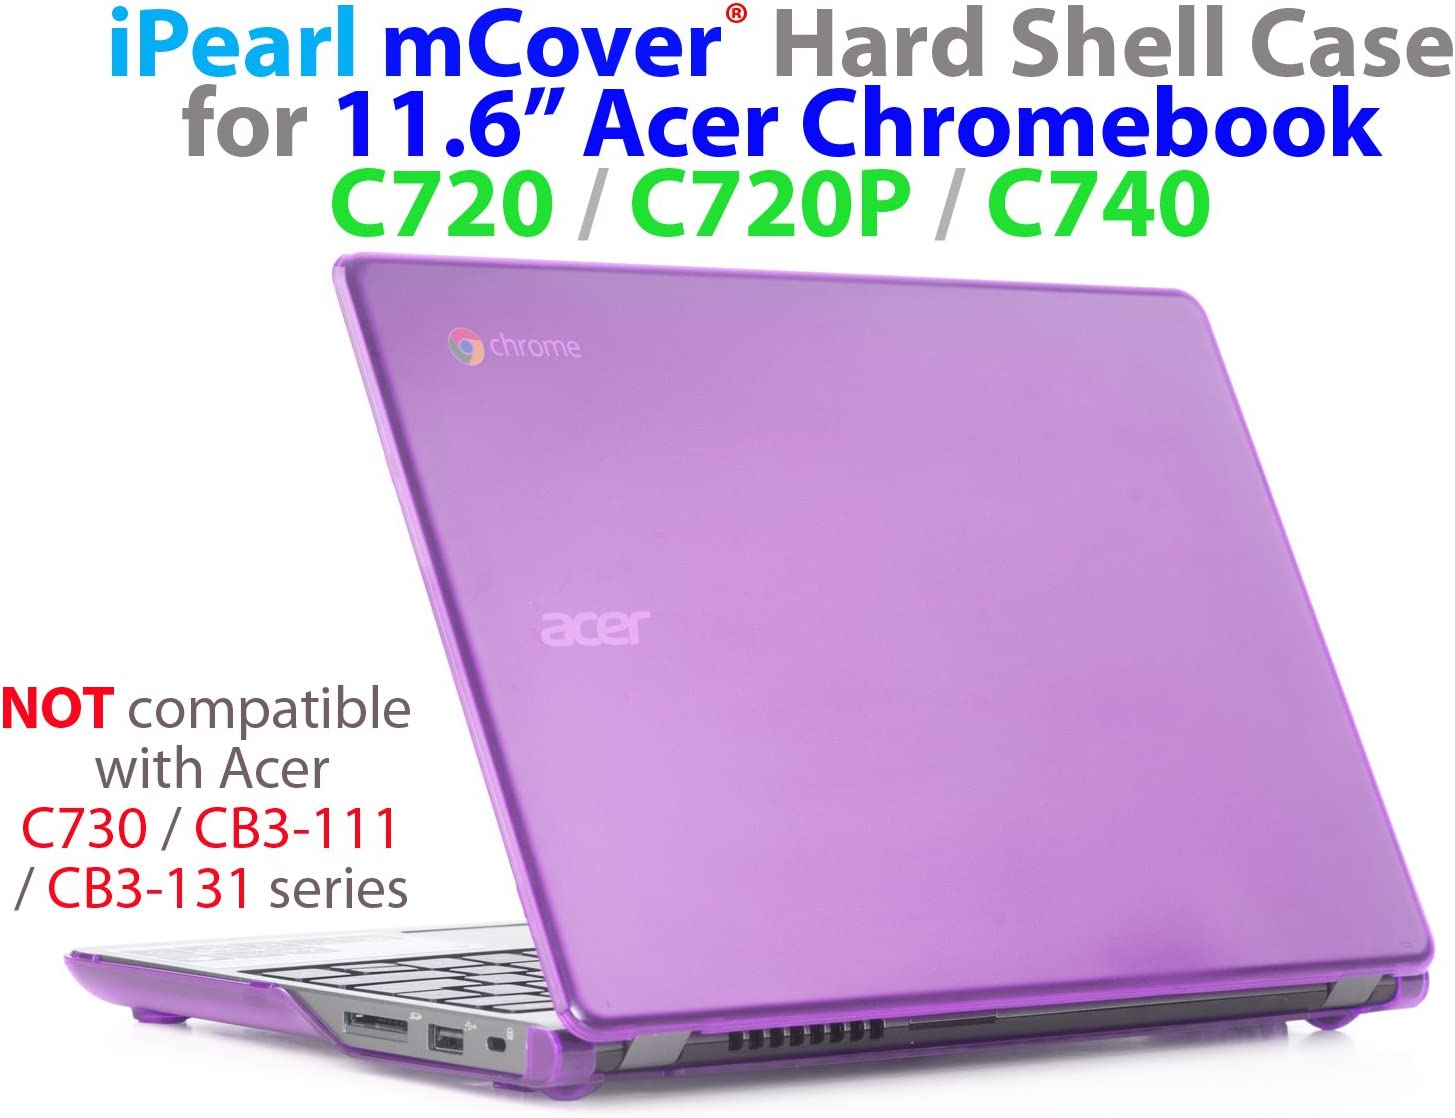 "mCover Purple iPearl Hard Shell Case for 11.6"" Acer C720 C720P C740 Series ChromeBook Laptop (NOT Compatible with Newer 11.6"" Acer Chromebook 11 C730 / CB3-111 / CB3-131 Series Laptop)"